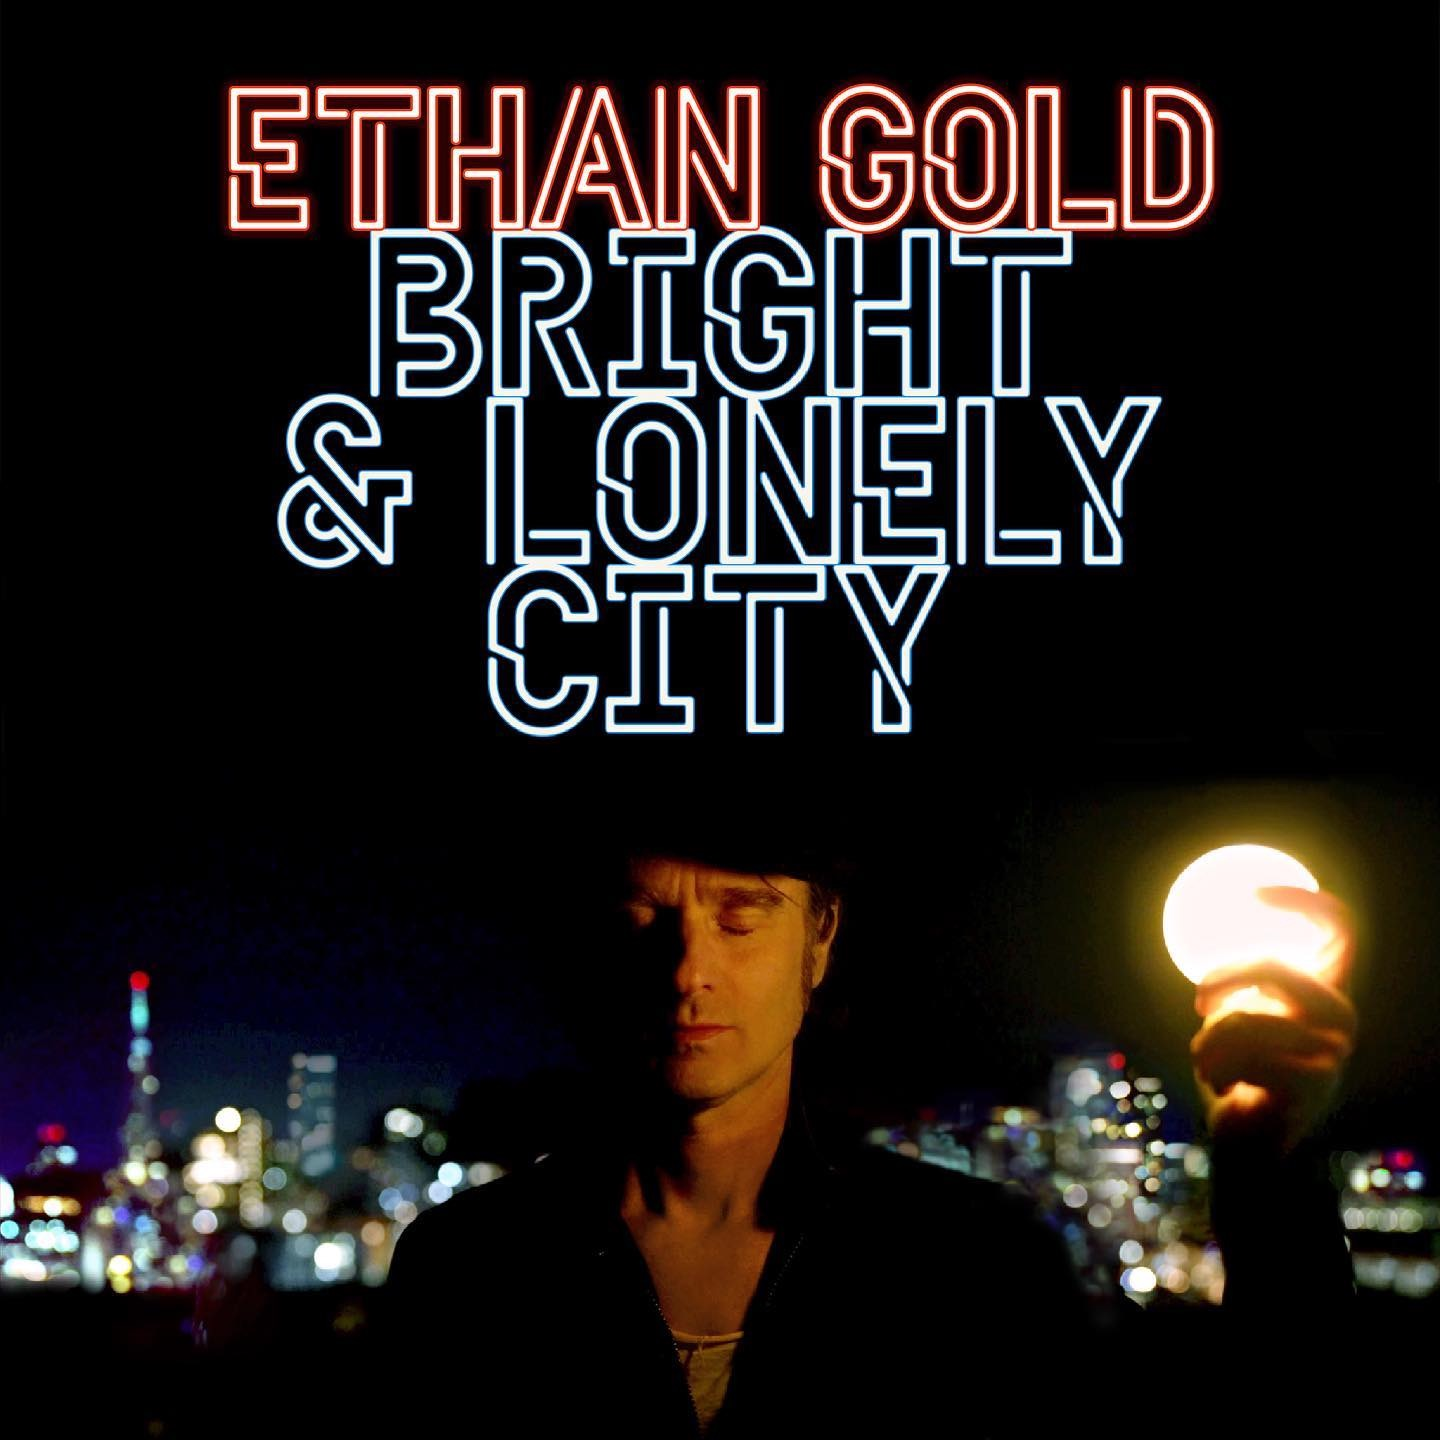 """ETHAN GOLD """"Bright & Lonely City"""" Link Thumbnail   Linktree"""